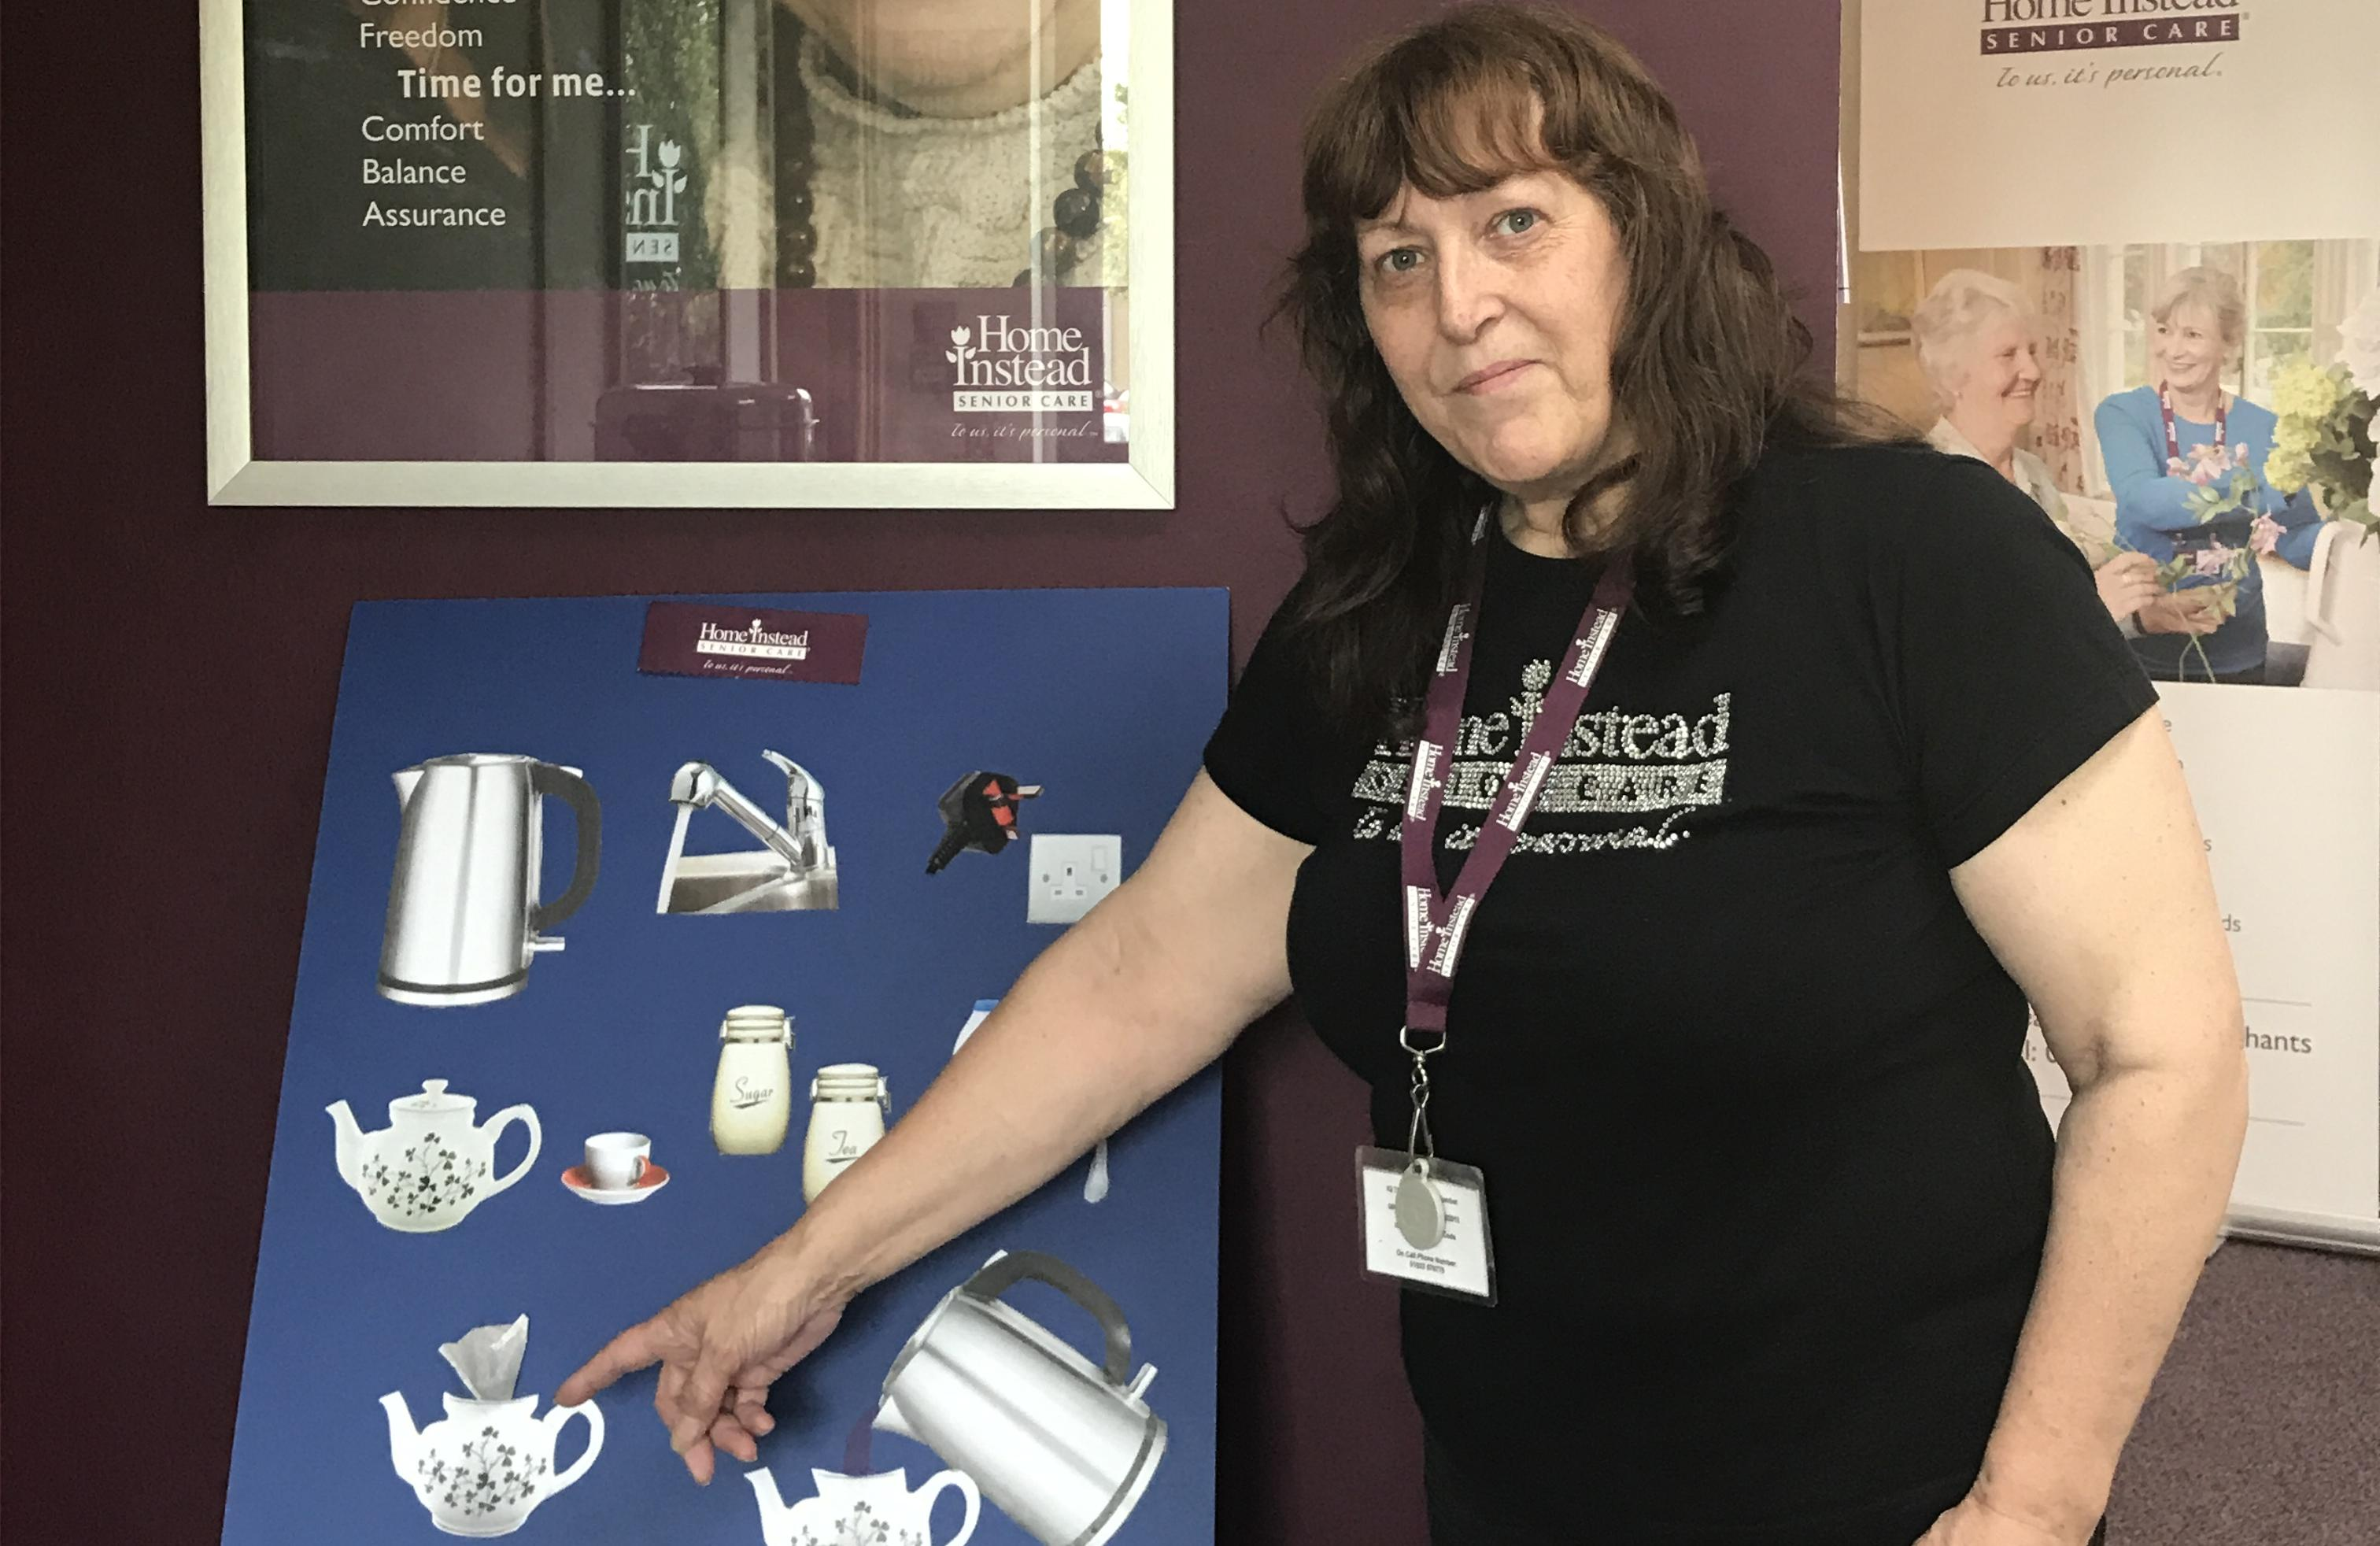 Are your staff dementia friendly? How many steps are there to make a cup of tea?